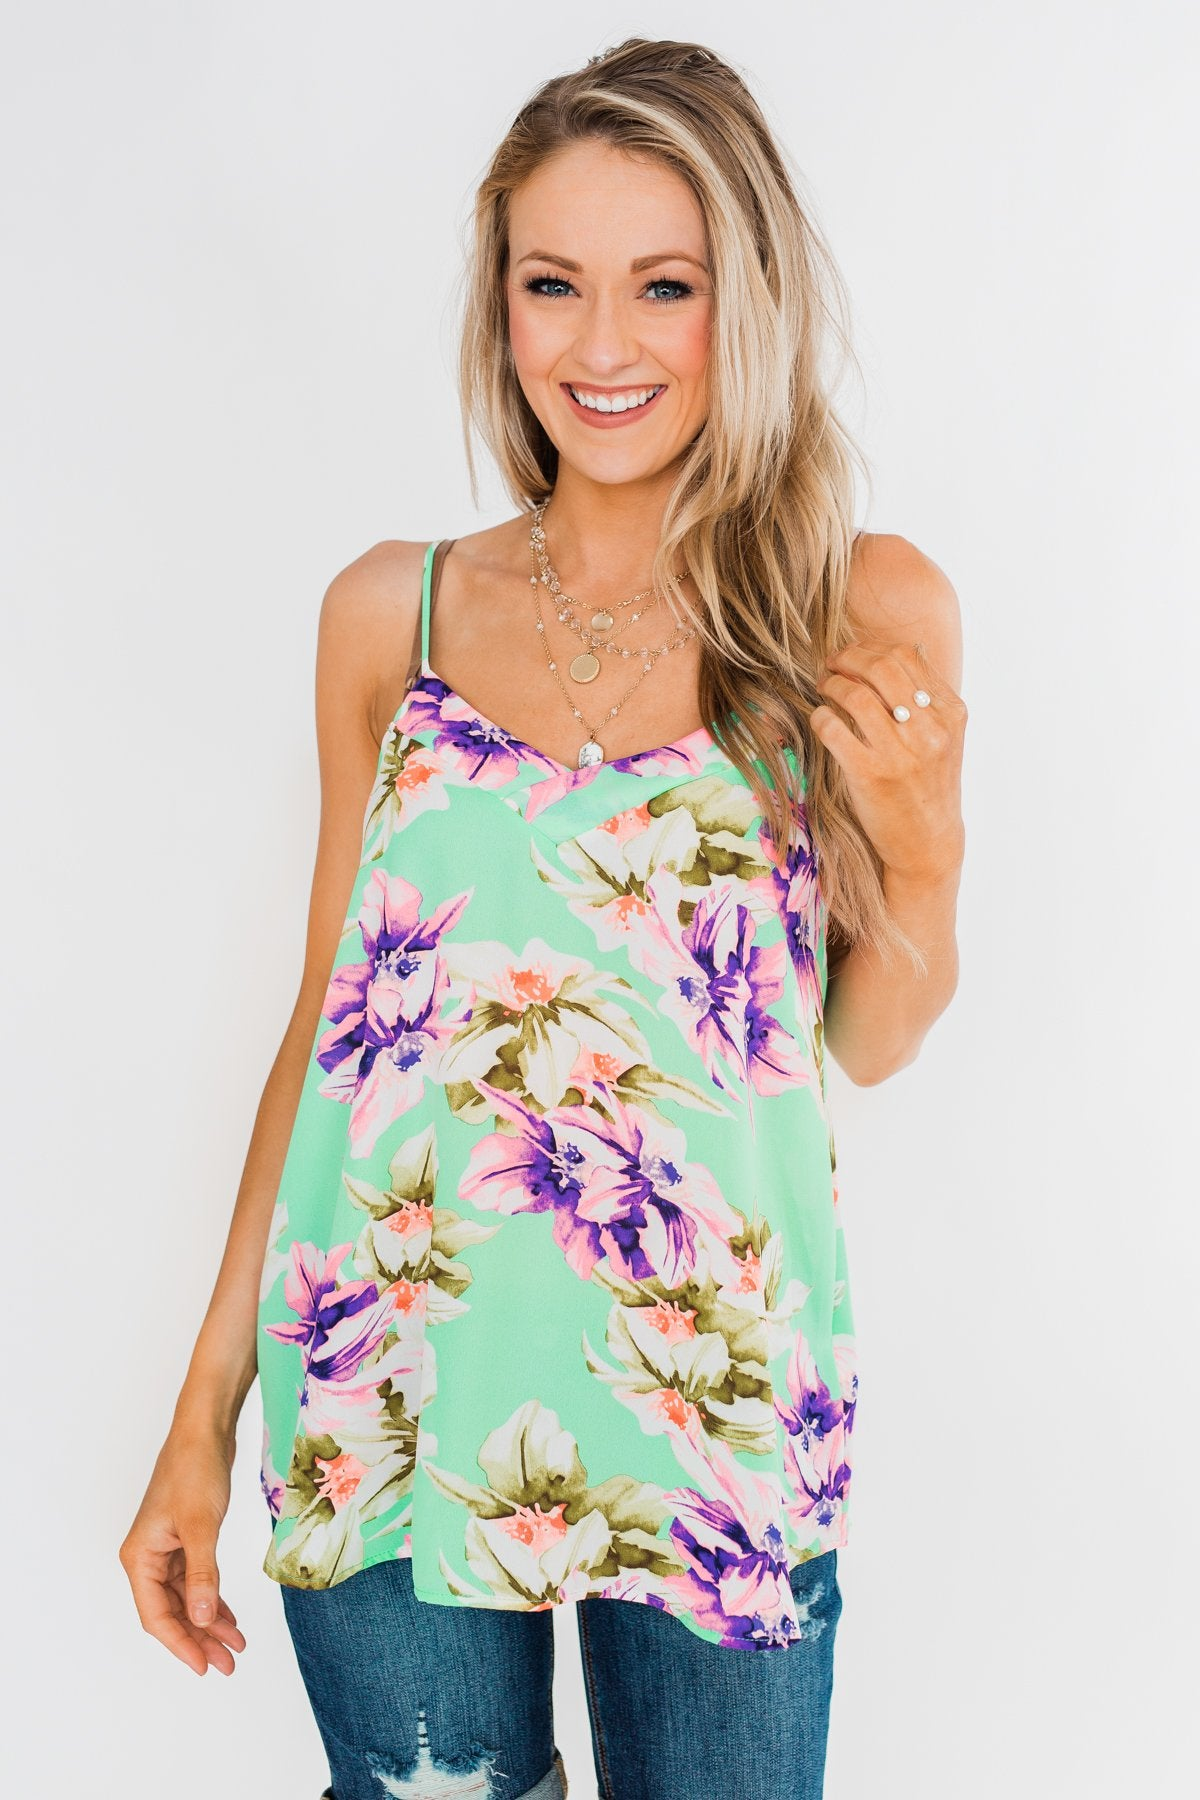 Leave You Speechless Floral Tank Top- Bright Mint